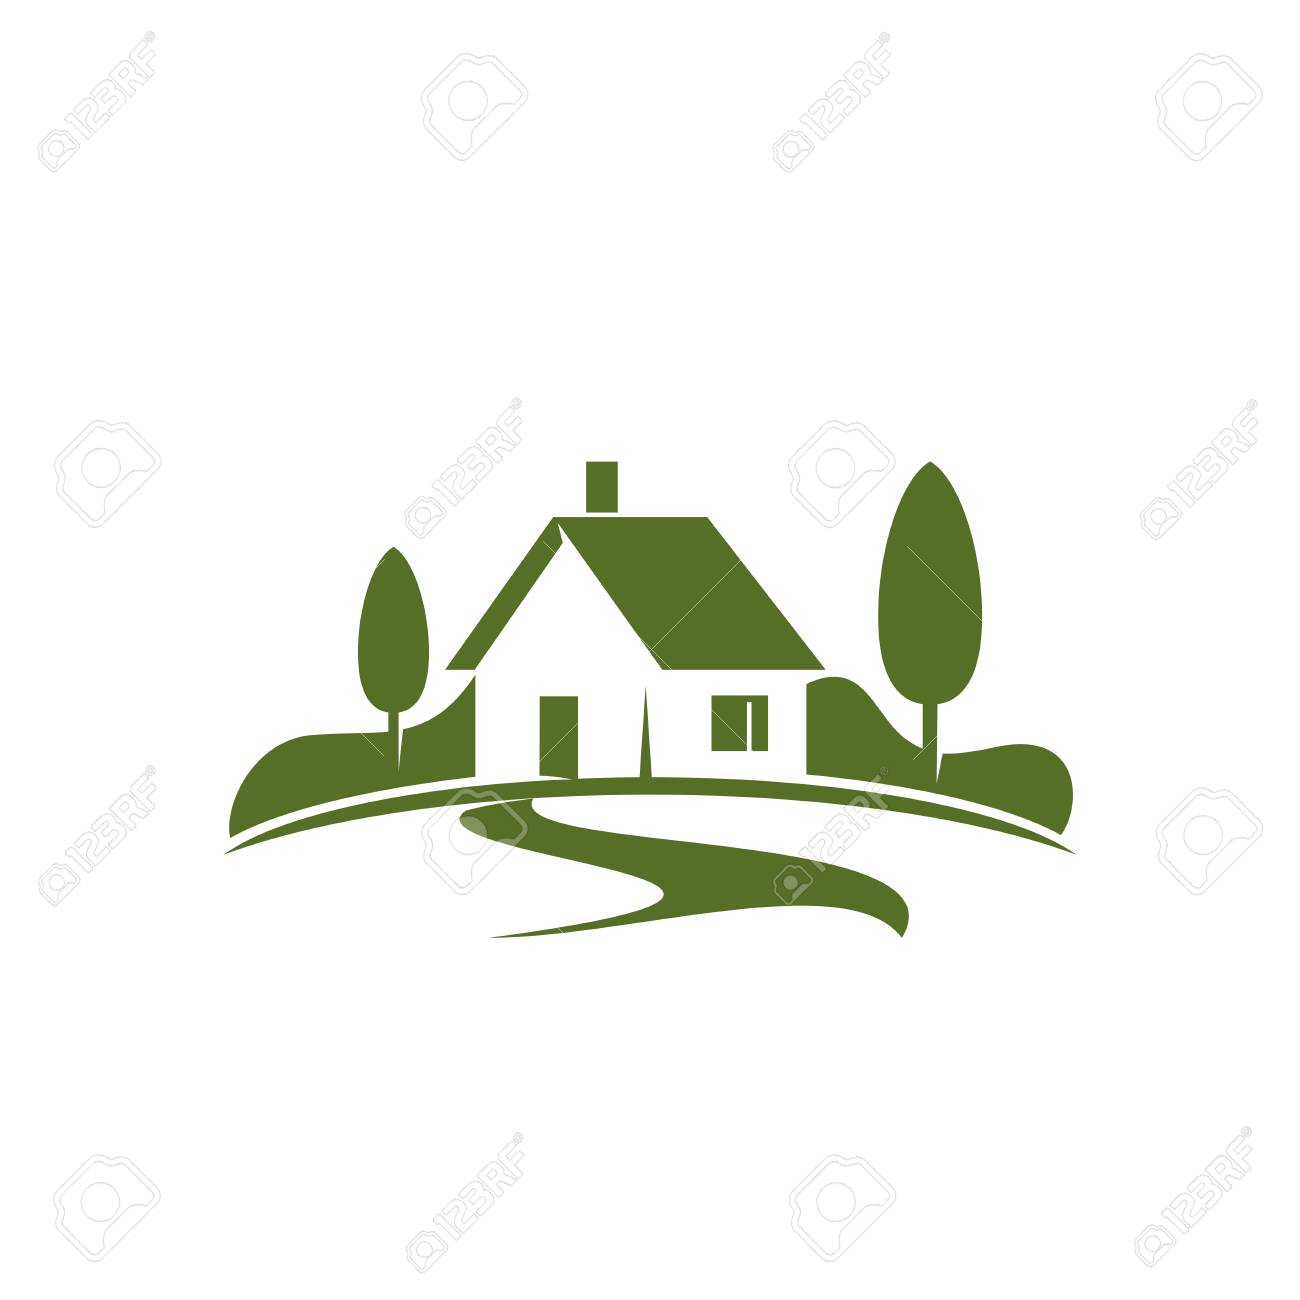 Country house or green home icon for real estate agency or ecology home concept. Vector isolated symbol of farm house in green forest or woodlands park for landscape designing company - 93167345